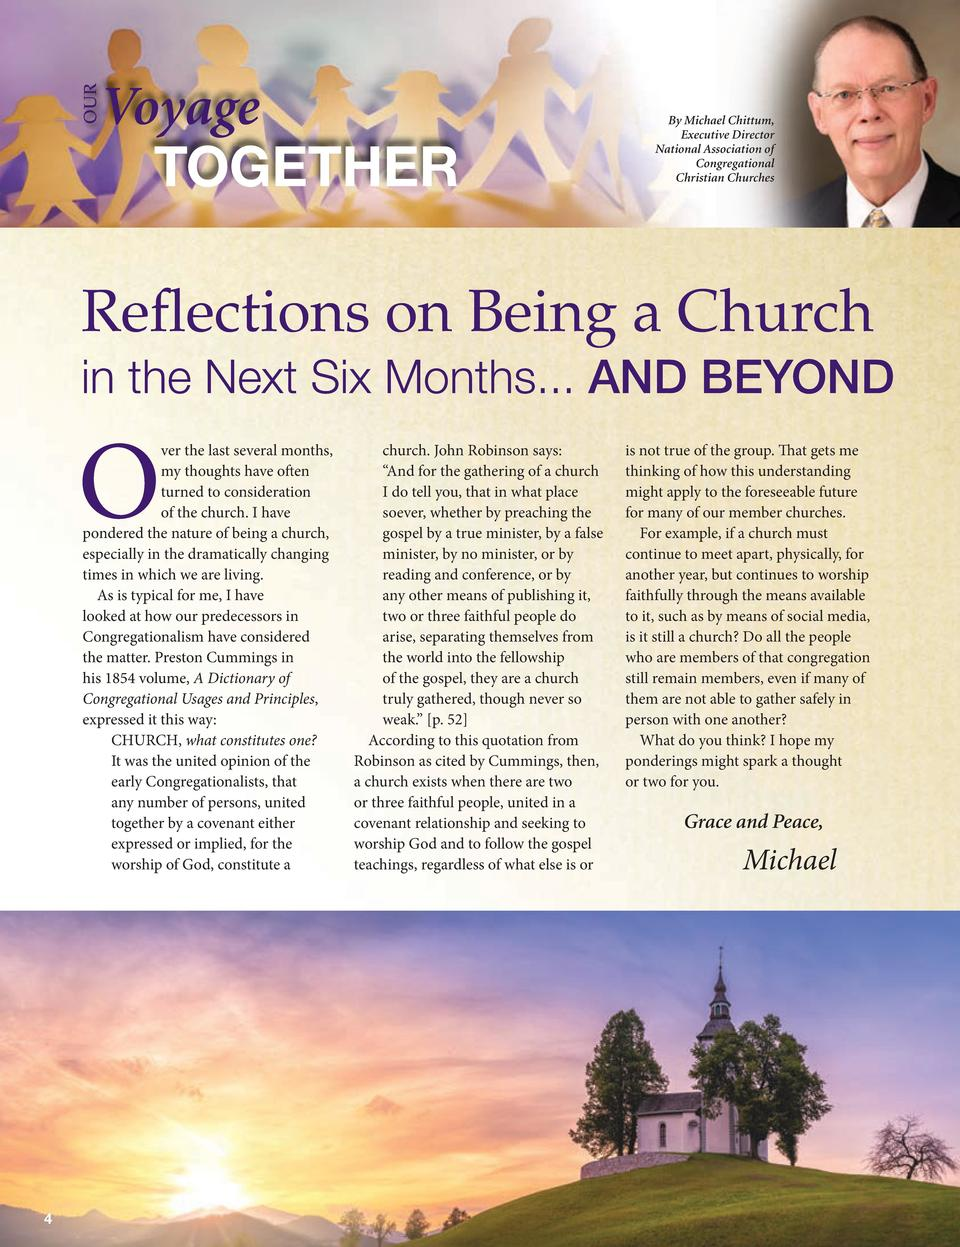 OUR  Voyage TOGETHER  By Michael Chittum, Executive Director National Association of Congregational Christian Churches  Re...